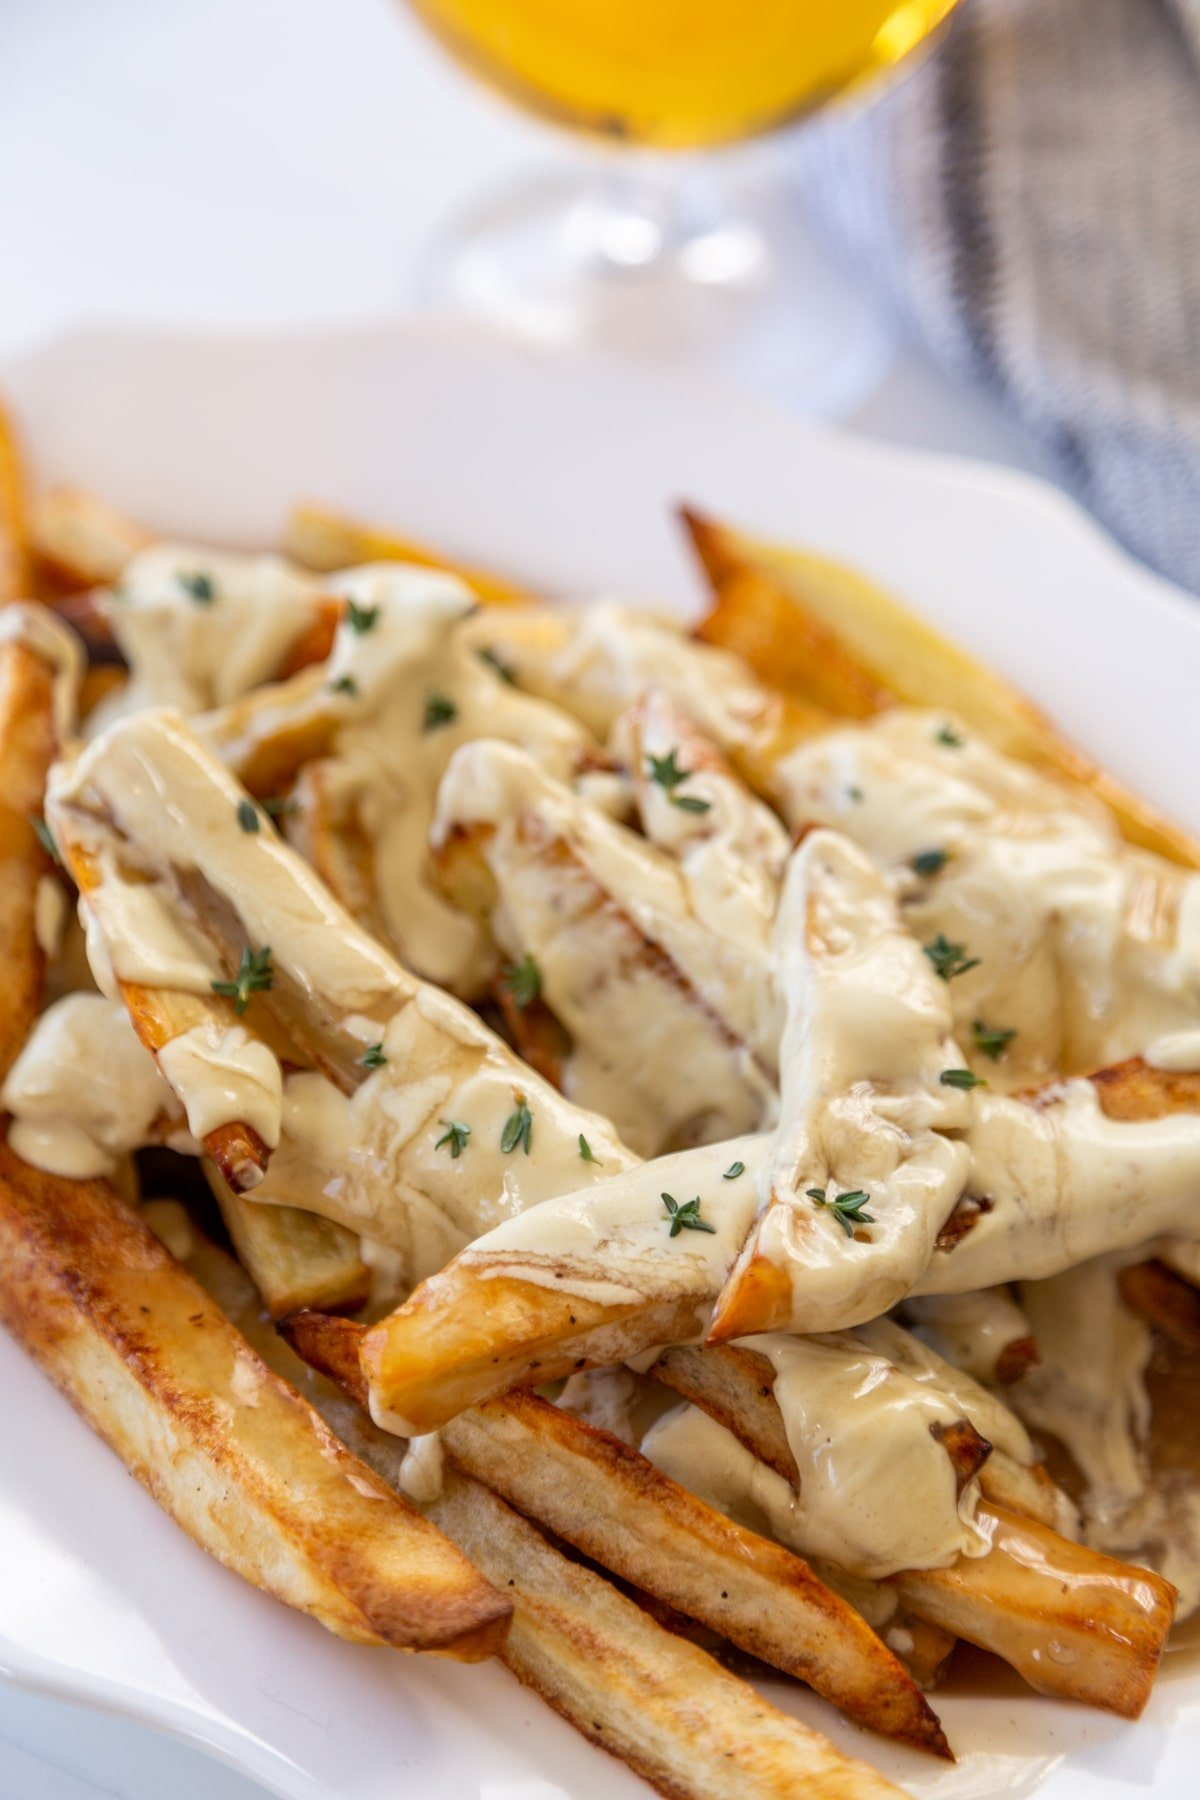 A white oval platter with fries that are covered in cheese sauce and gravy, and sprinkled with minced chives.